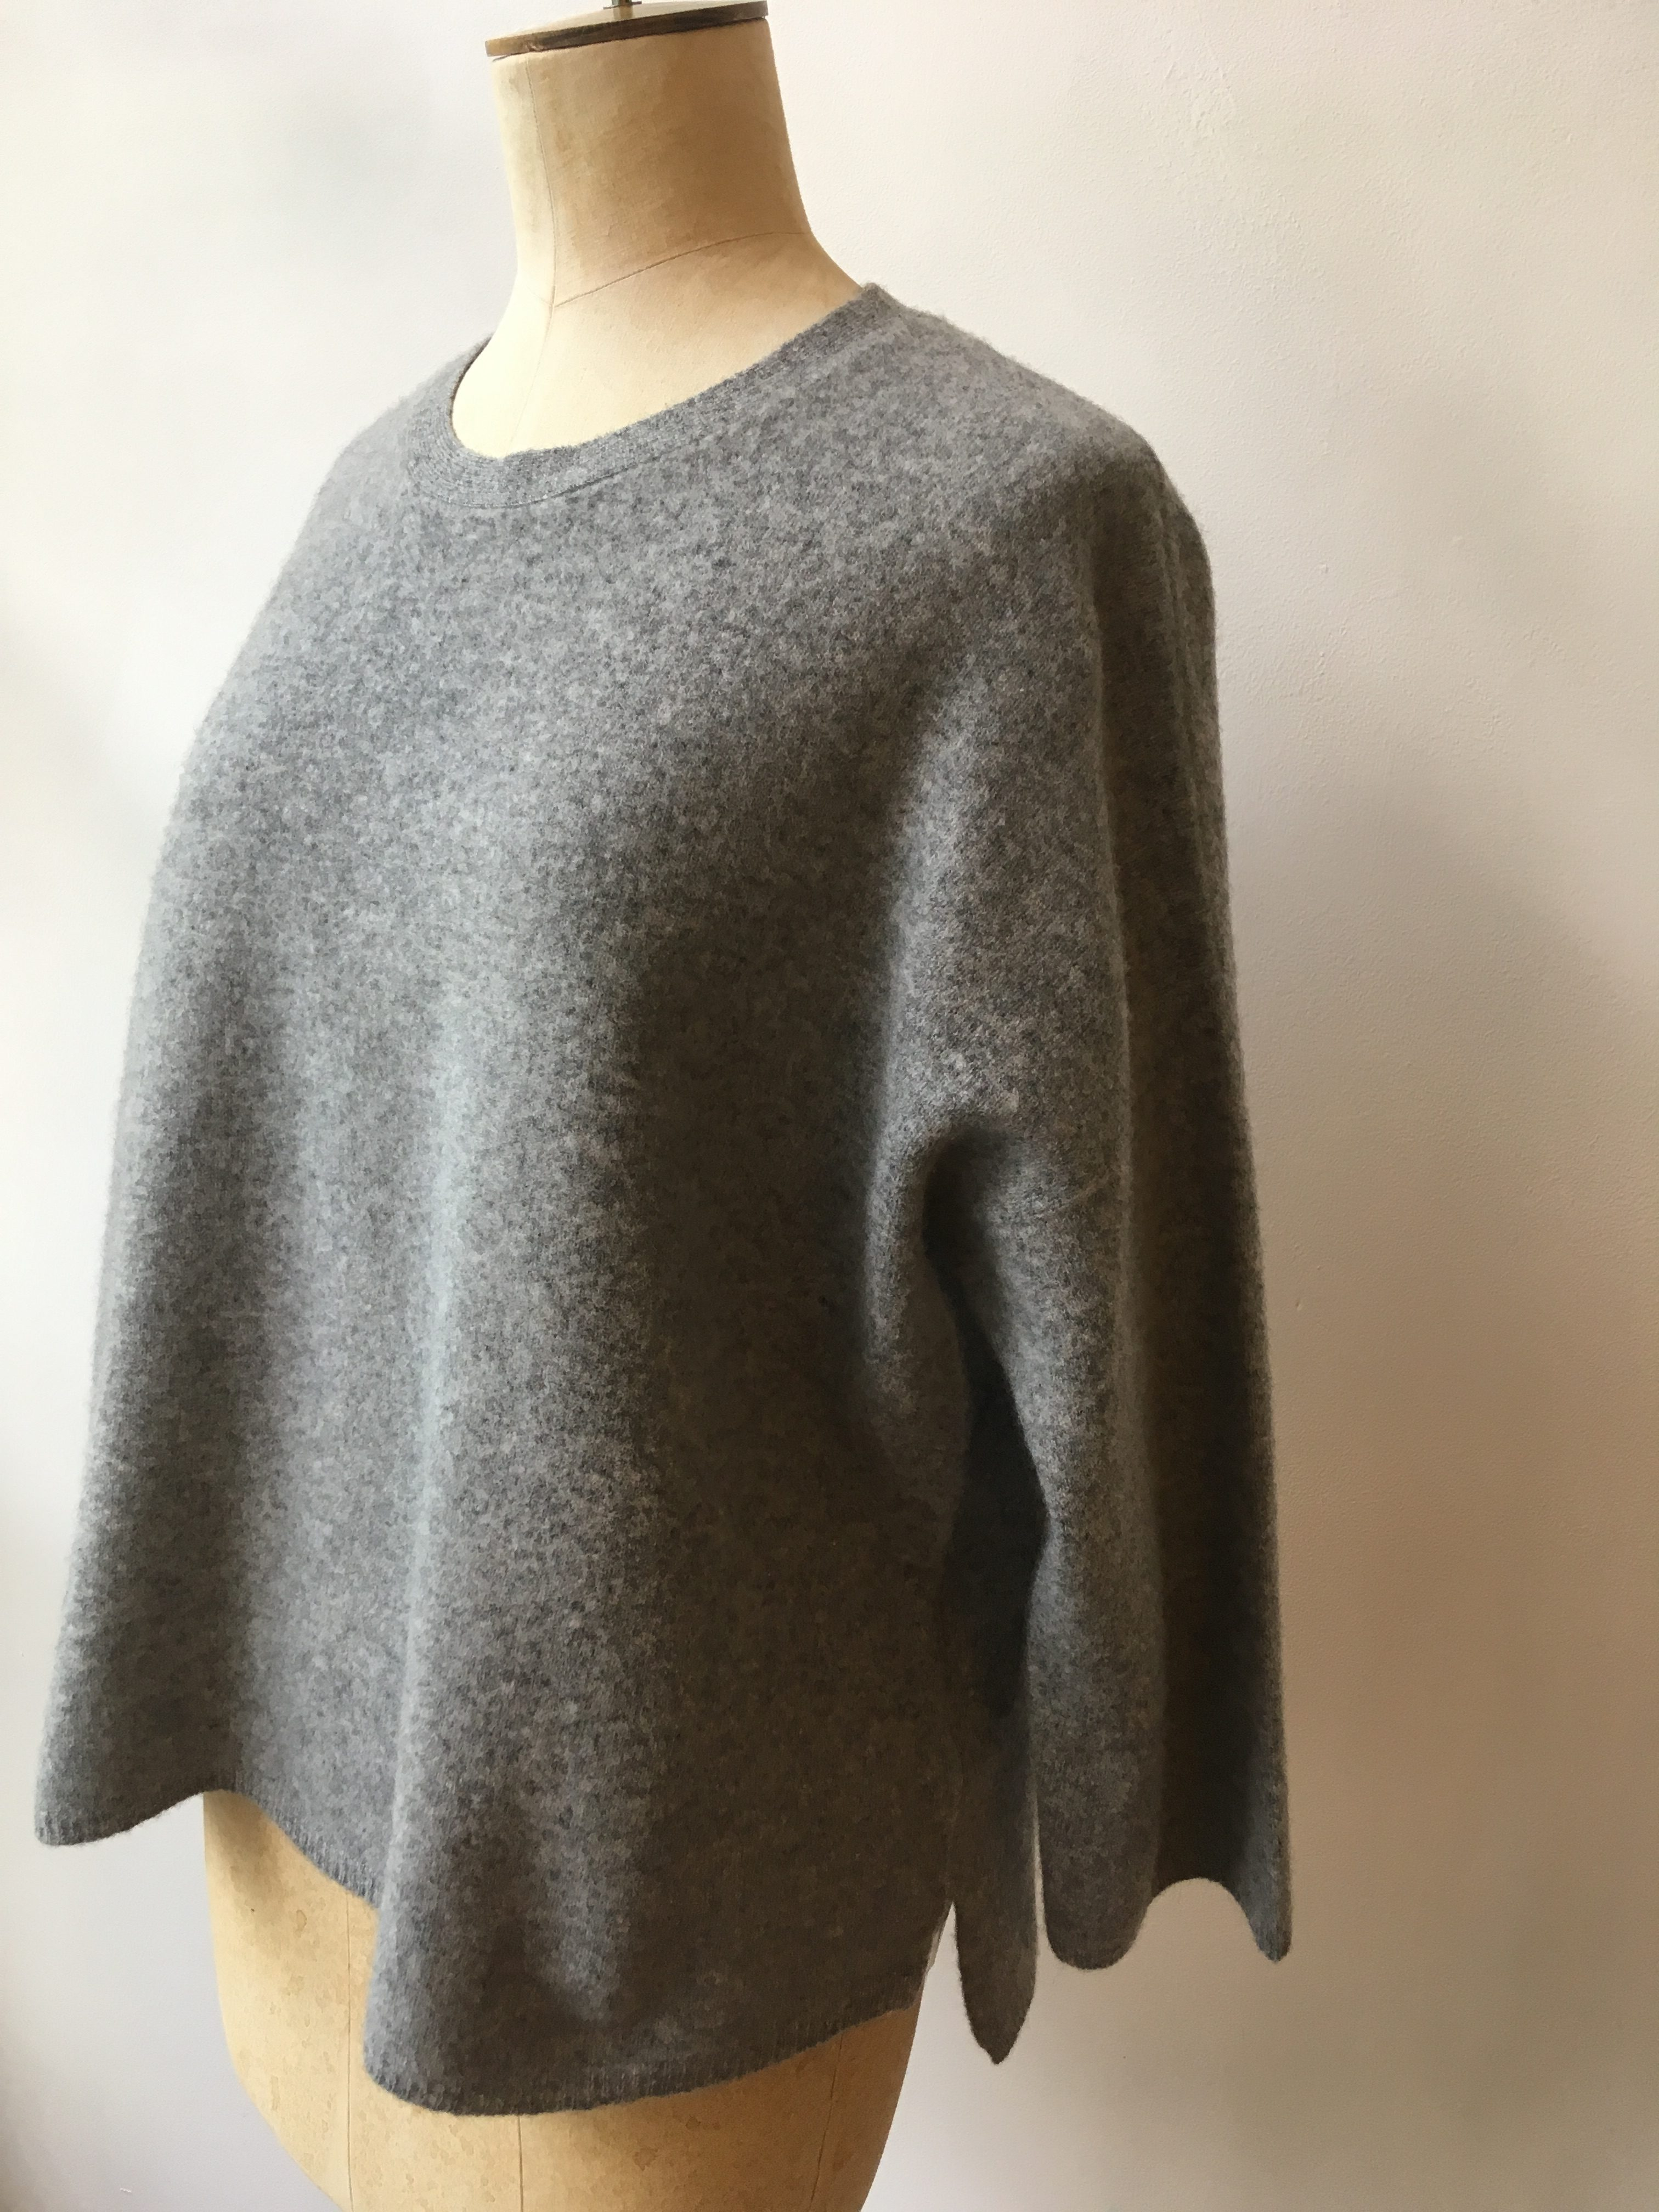 Cash CA Wide Body Sweater in Grey